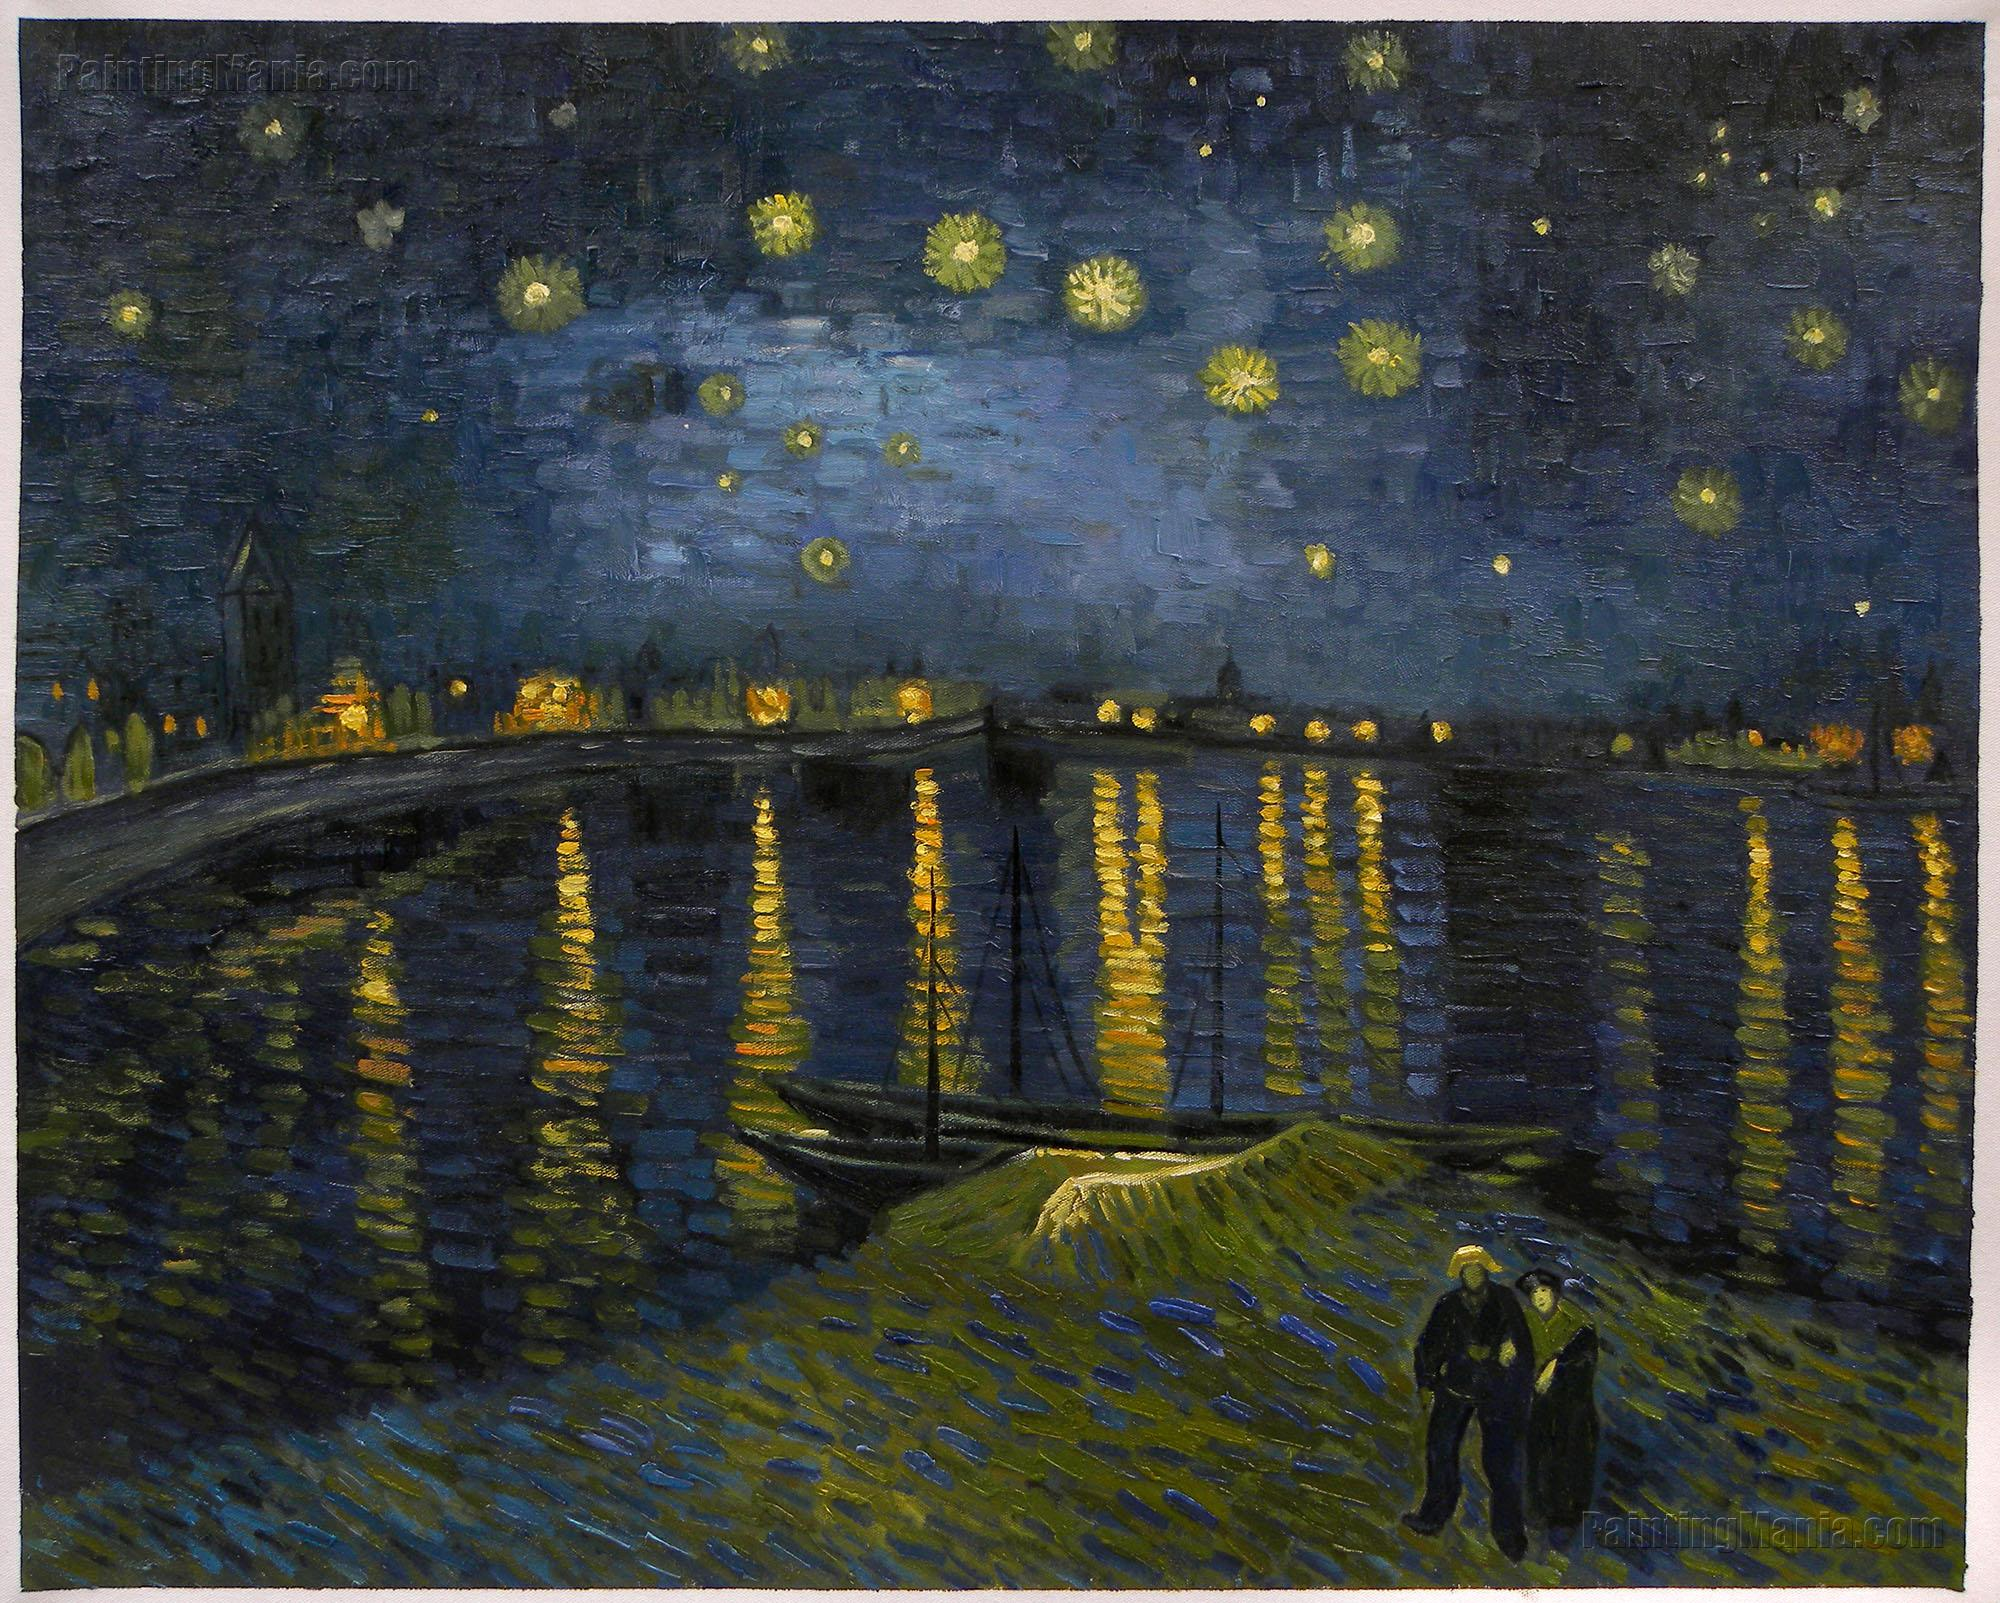 2000x1603 Starry Night Over The Rhone - Starry Night Over The Rhone Painting